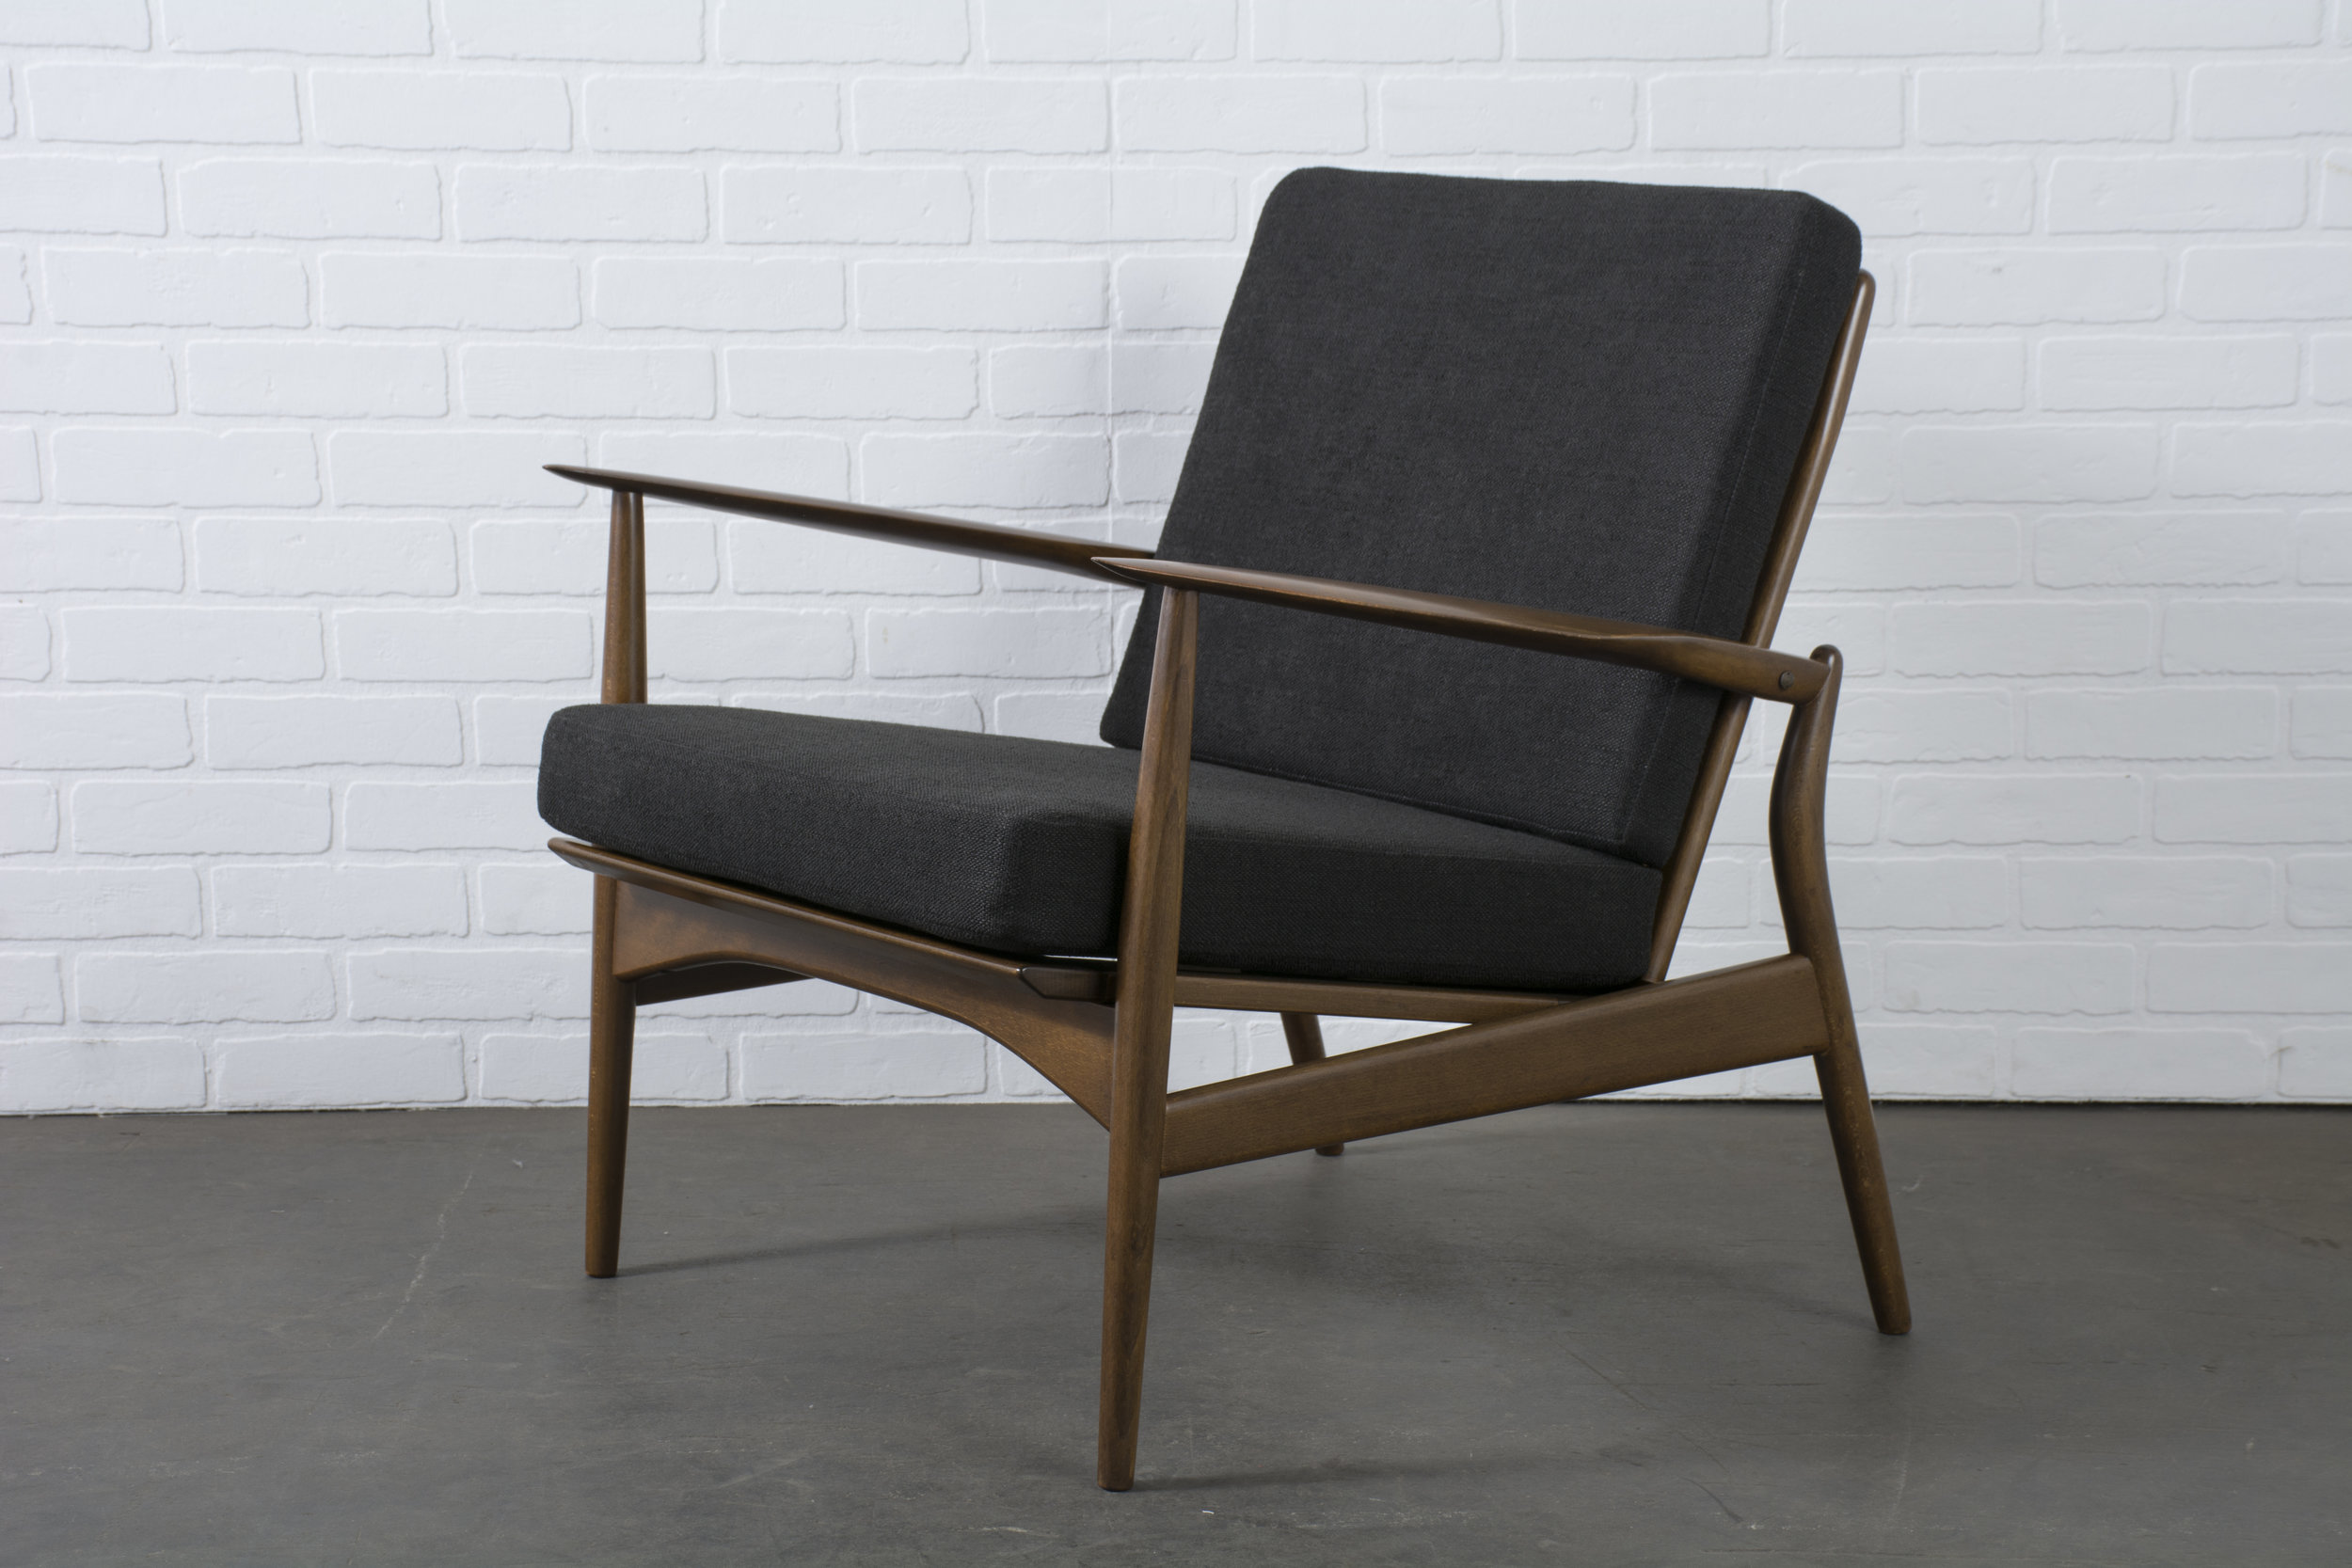 Danish Modern 'Spear' Lounge Chair by Ib Kofod-Larsen